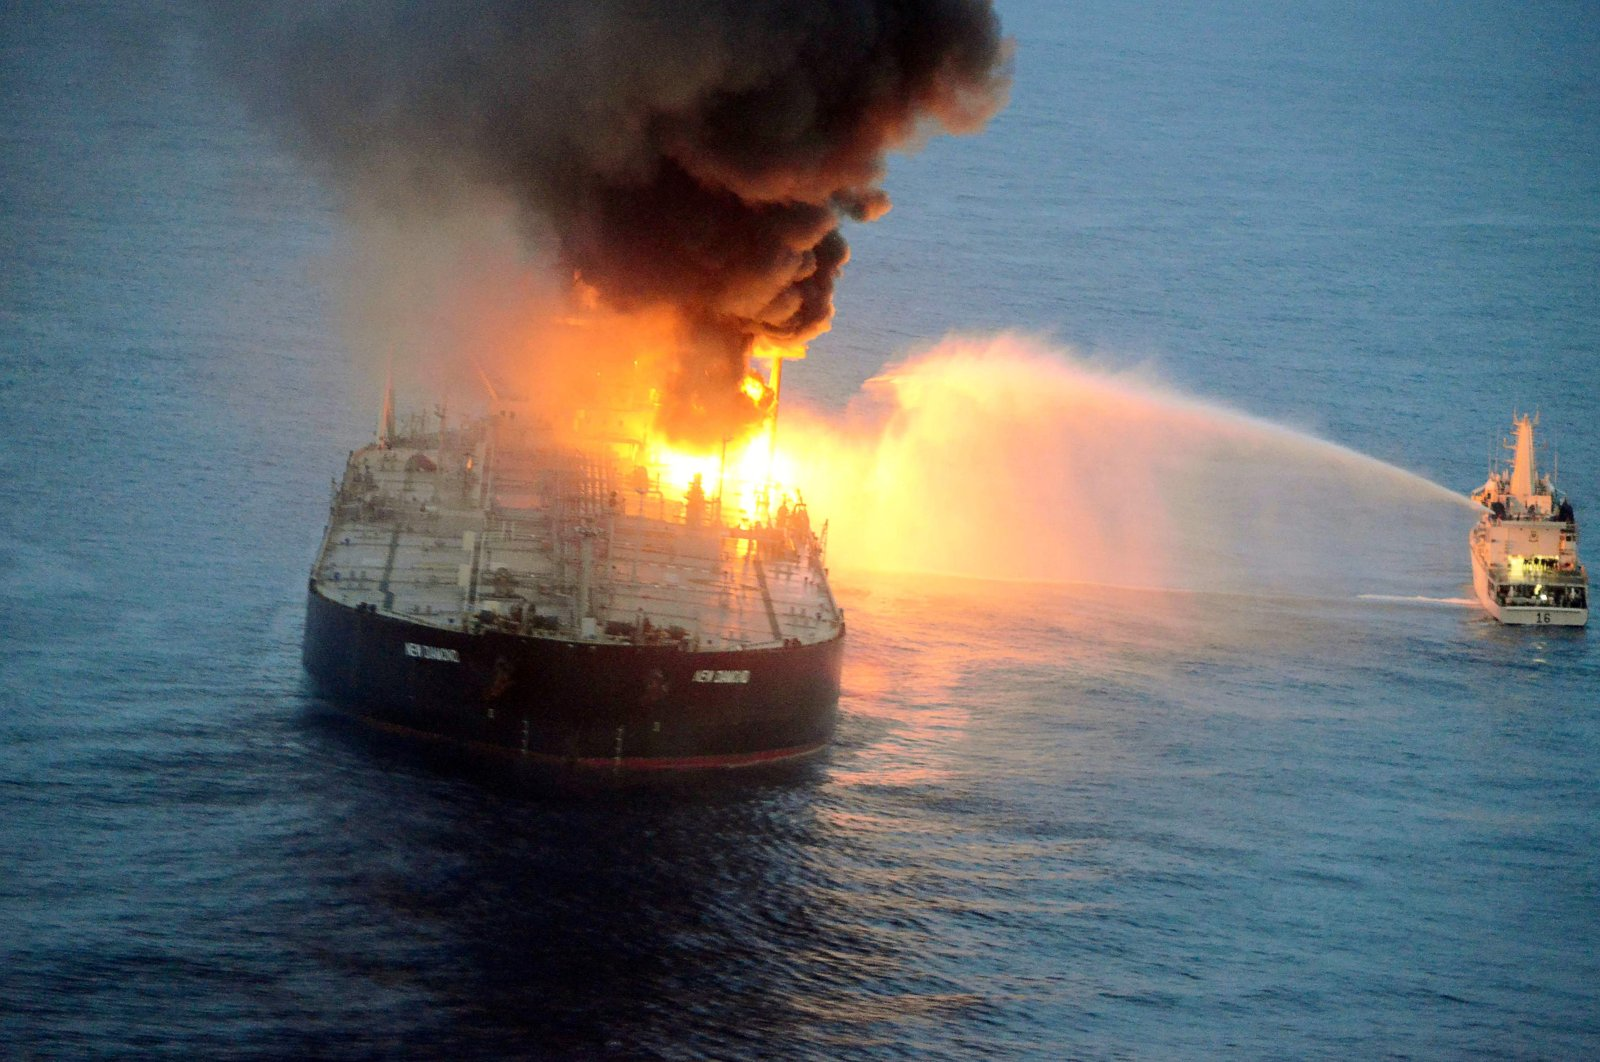 This handout photograph taken on Sept. 4, 2020, and released by the Sri Lanka Air Force, shows an Indian coast guard ship (R) battling to extinguish the fire on the Panamanian-registered crude oil tanker New Diamond, some 60 kilometers off Sri Lanka's eastern coast. (Sri Lankan Air Force Photo via AFP)